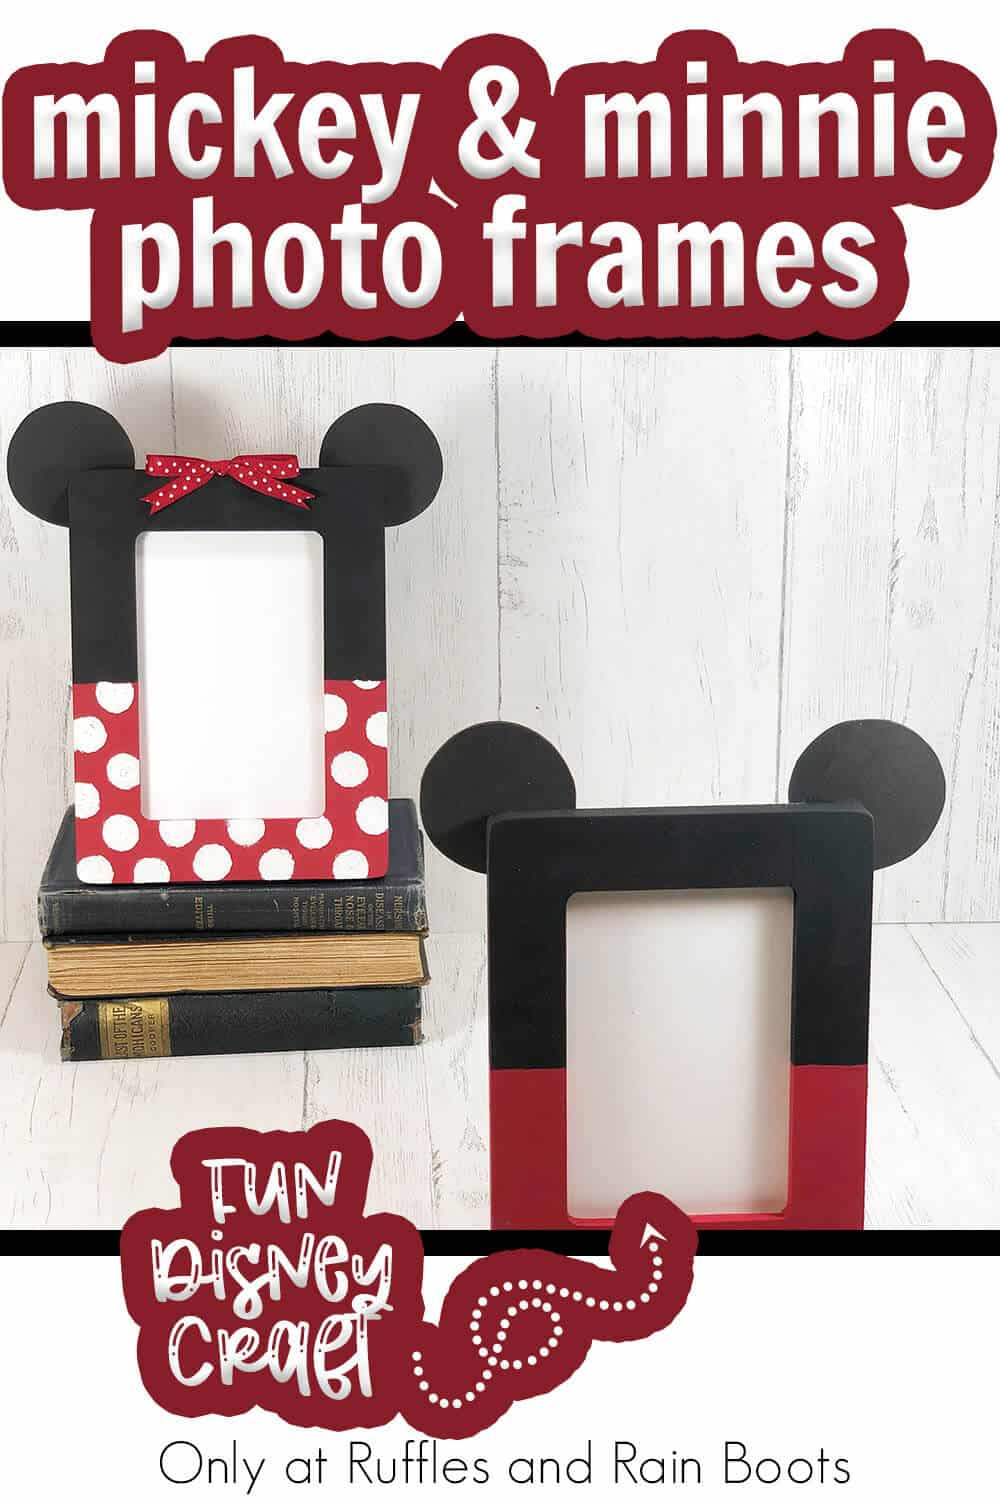 mickey and minnie themed photo frame craft with text which reads mickey & minnie photo frames easy disney craft